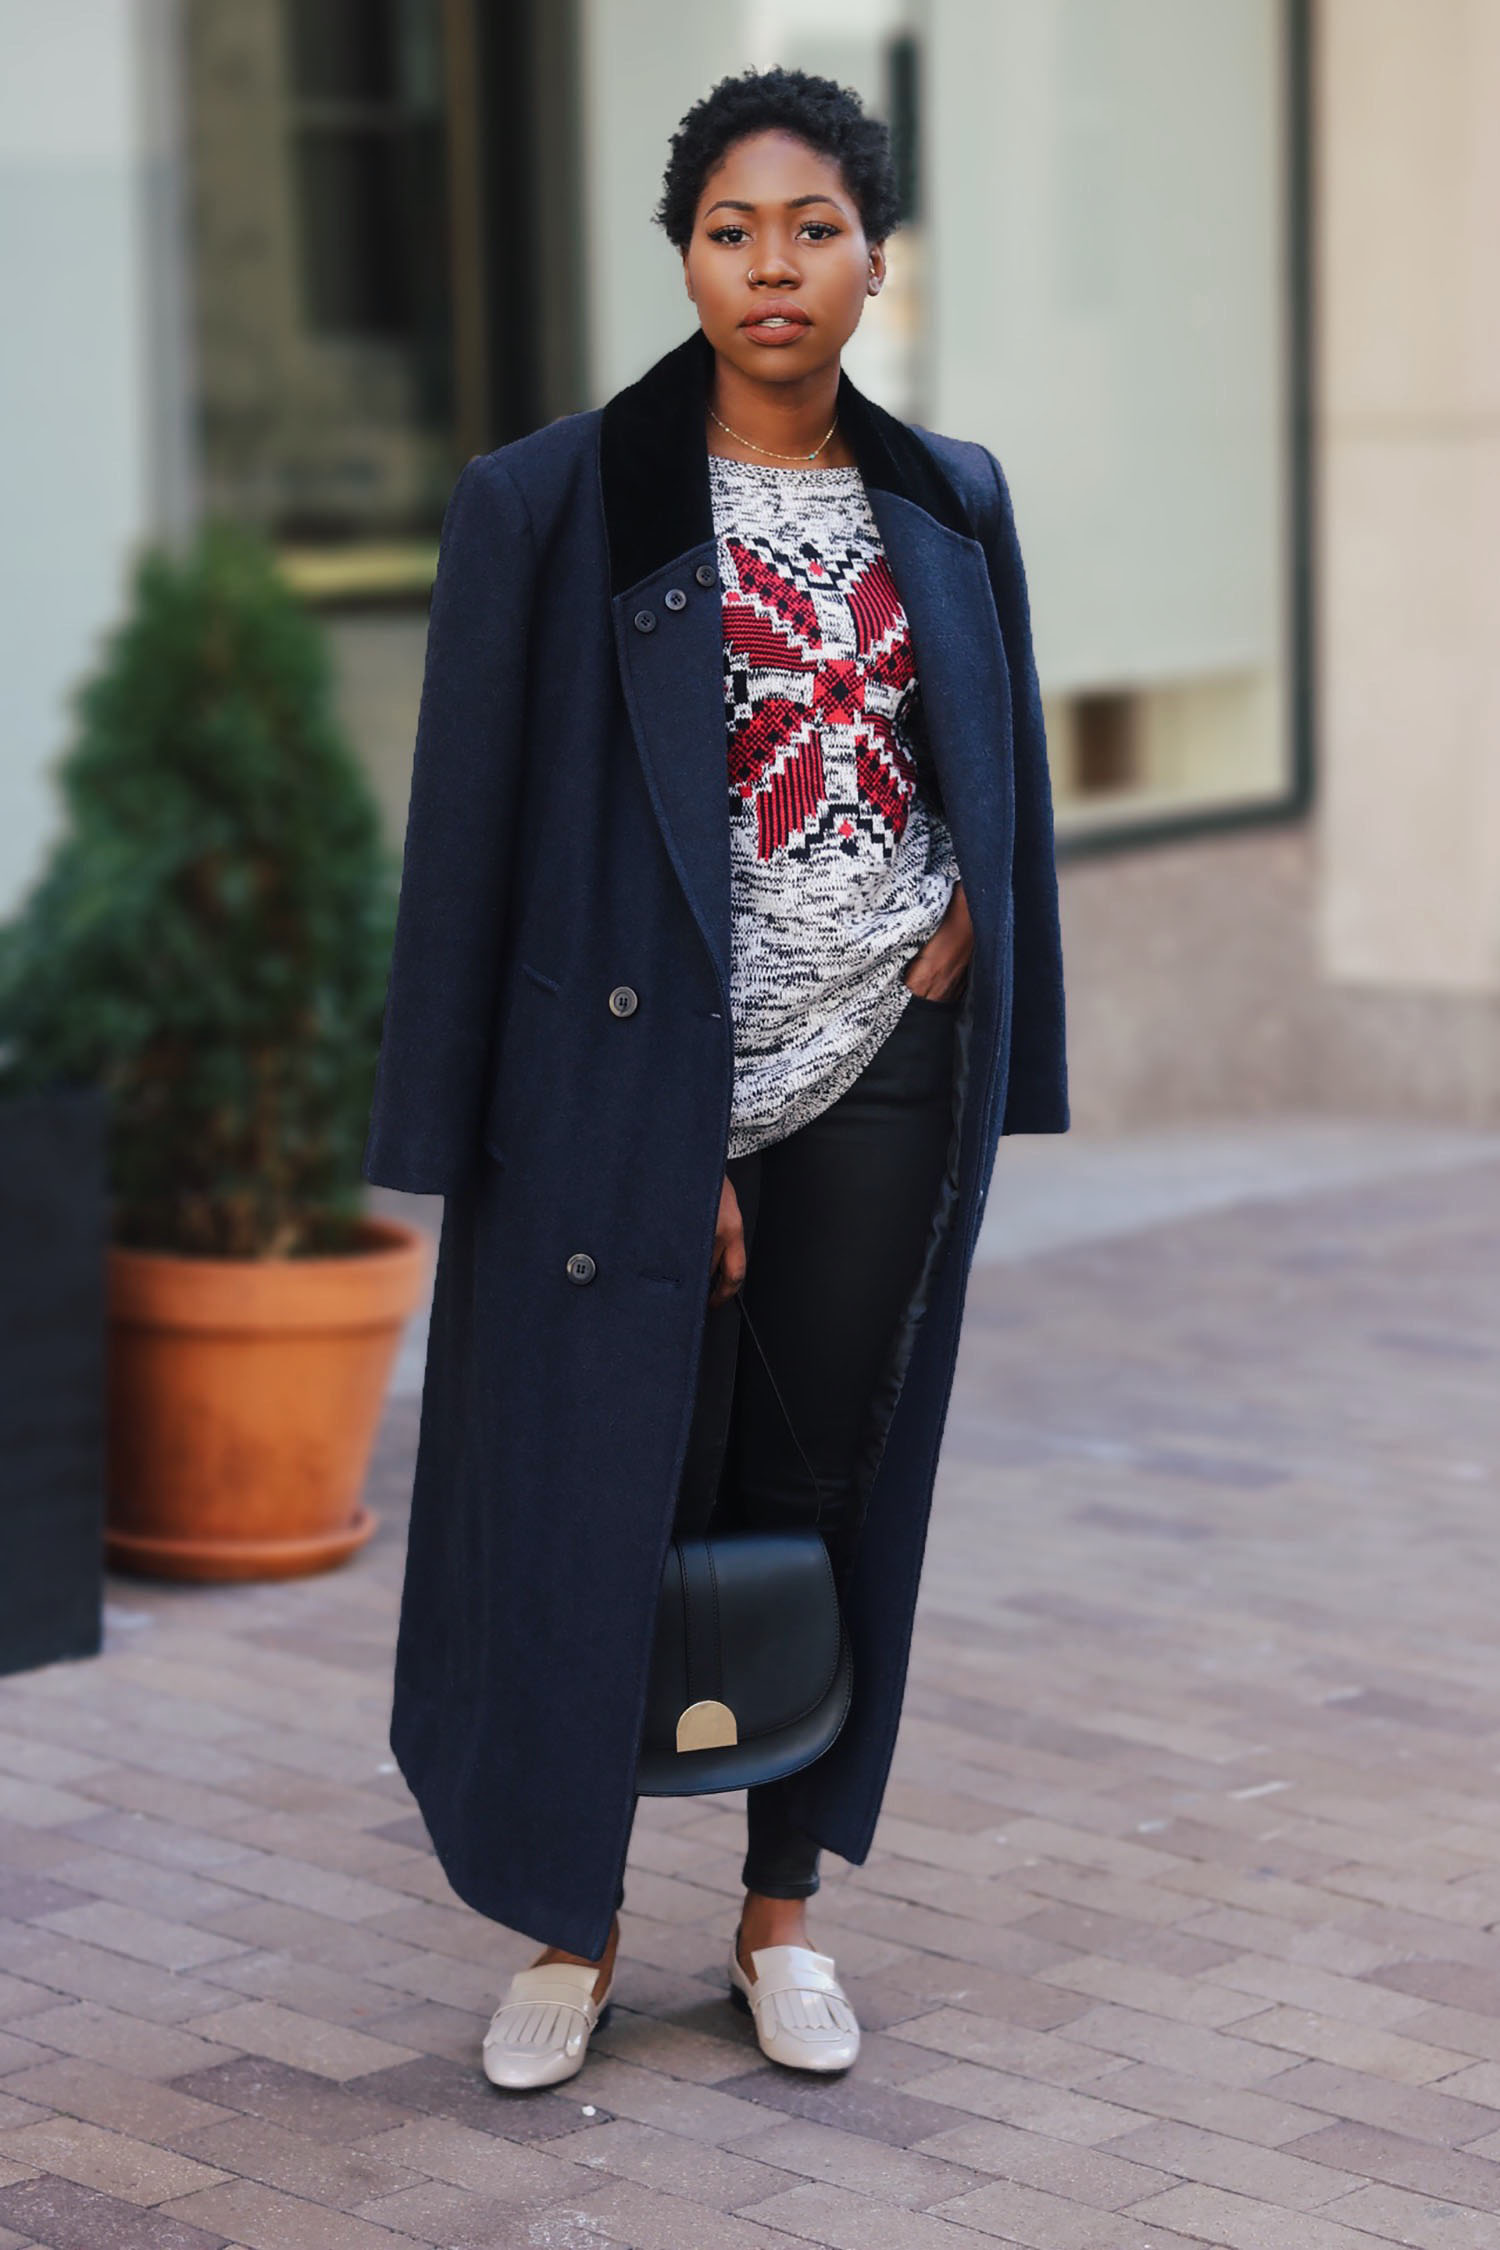 LOAFERS & OVERSIZED LONG COAT | Style Synopsis